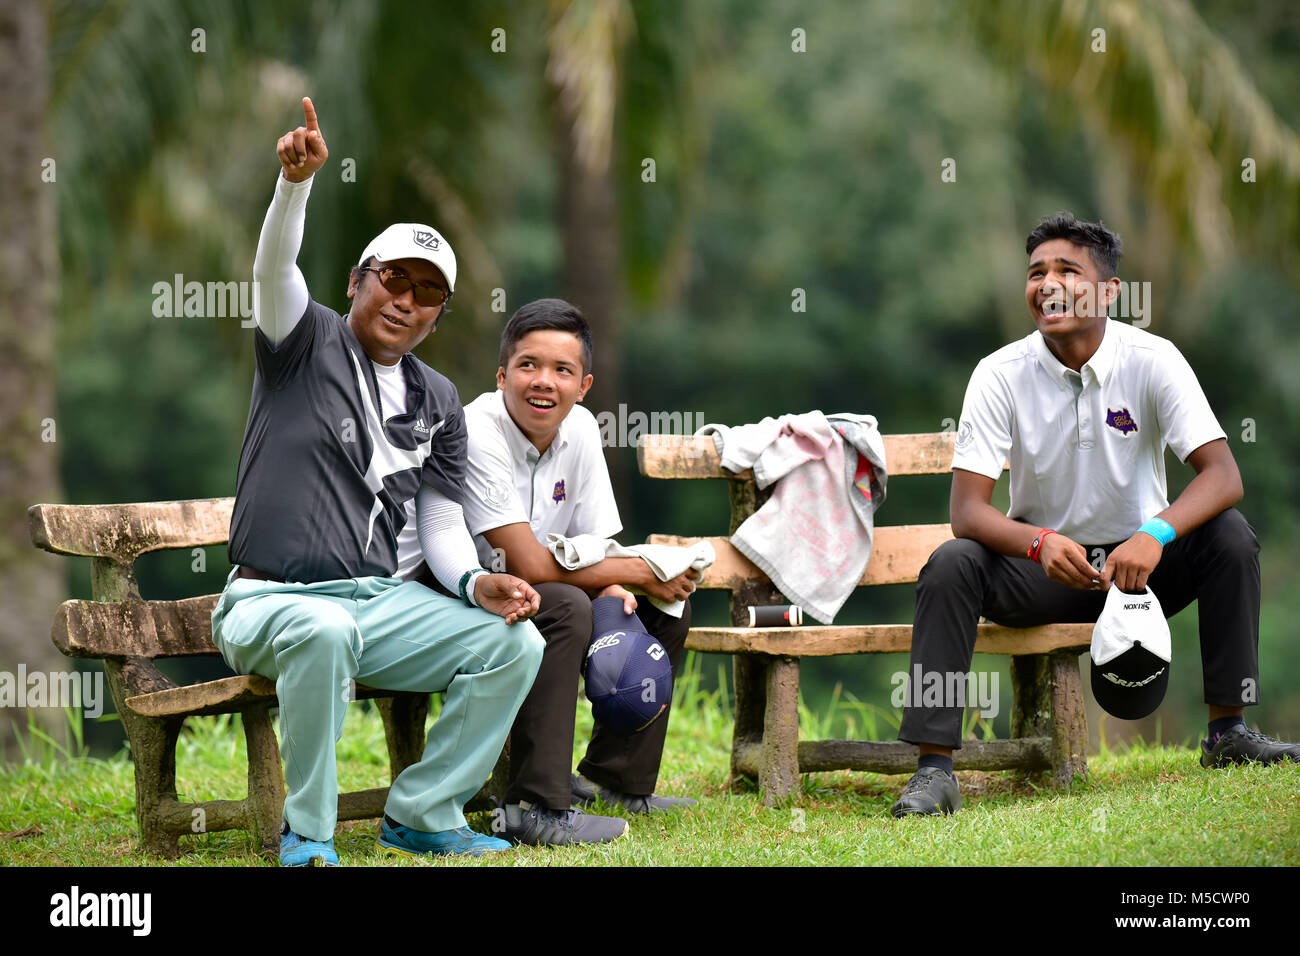 Danau, UKM Bangi - FEBRUARY 10: Players and caddies have chat on the 6th hole during Round One of the Danau Junior - Stock Image